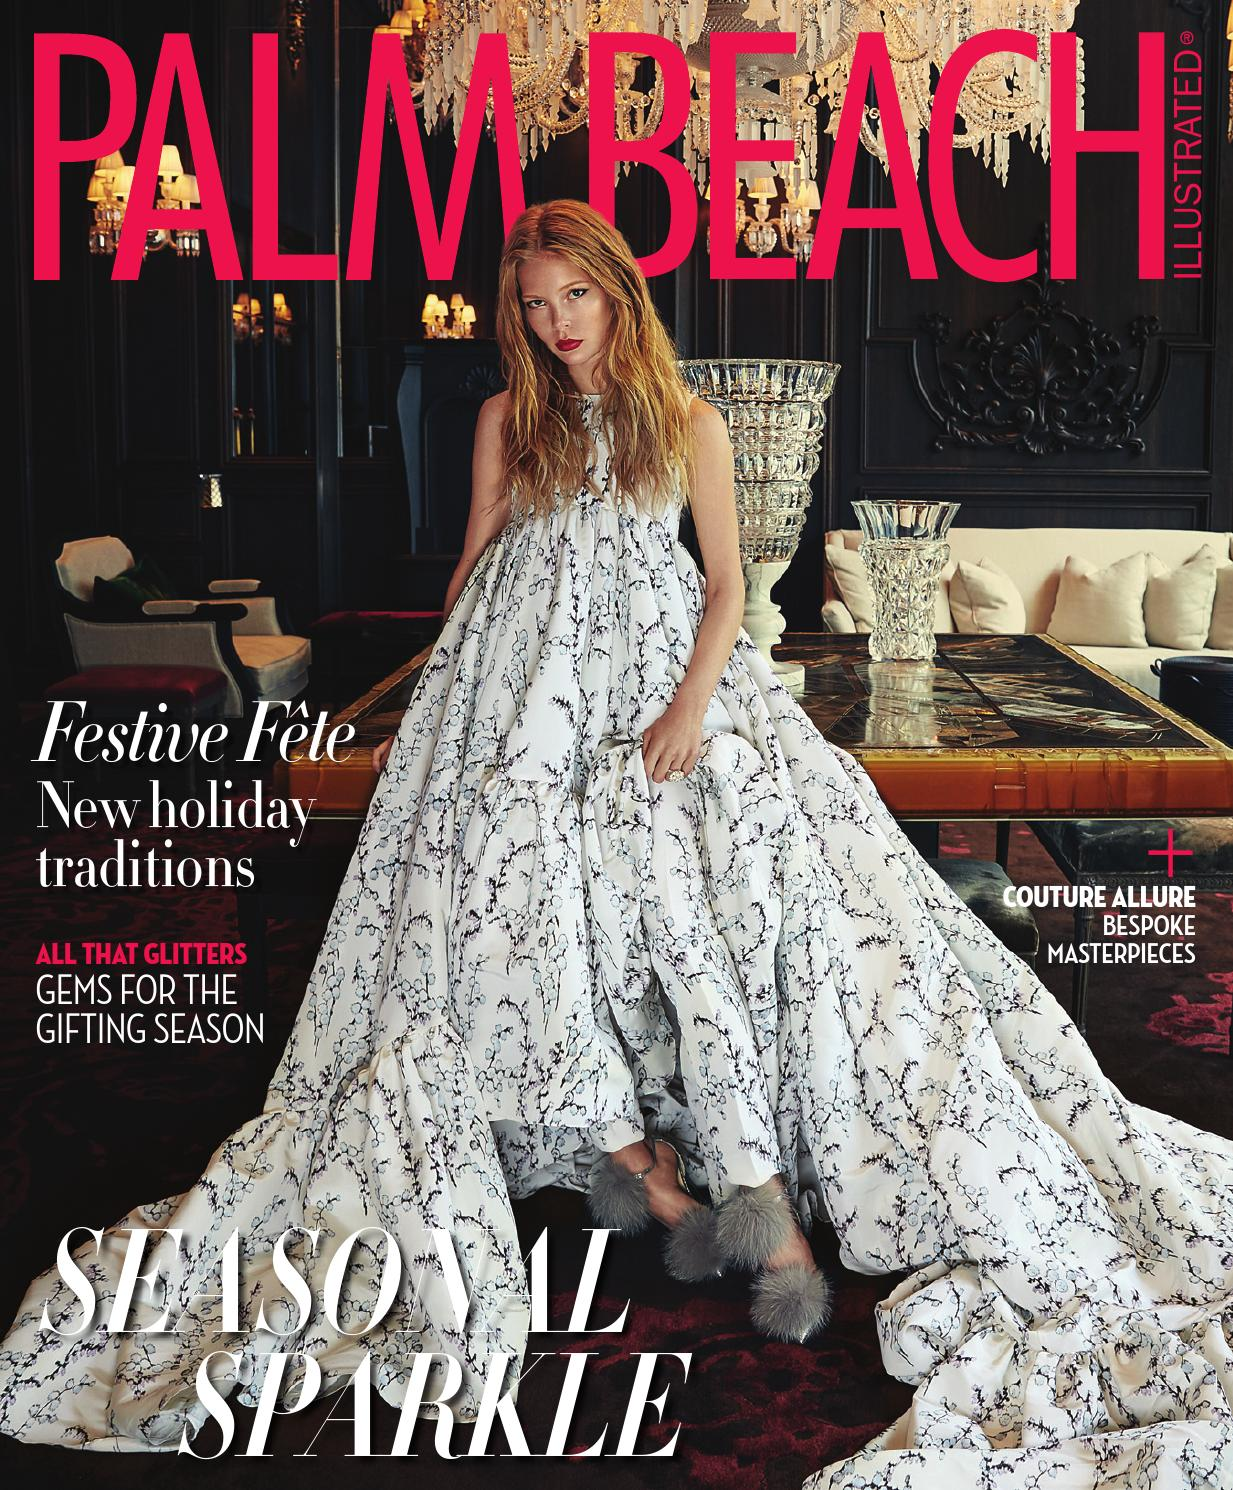 Palm Beach Illustrated December 2015 By Media Group Issuu Bennett Flo Pearlised Leather Cluth Pink